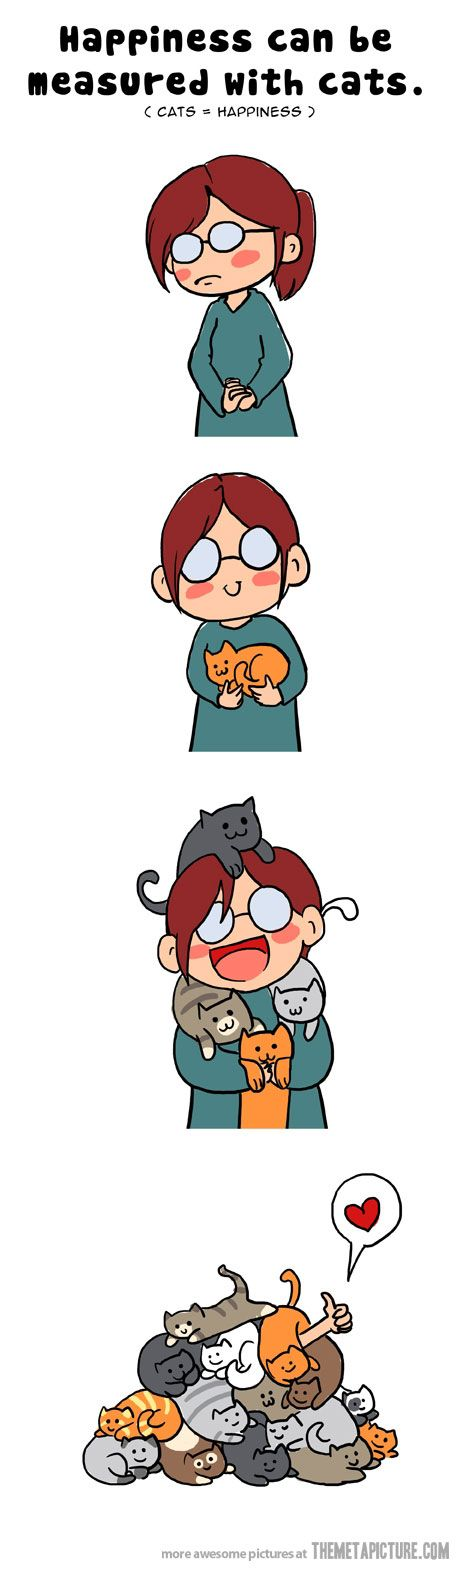 cats=hapiness